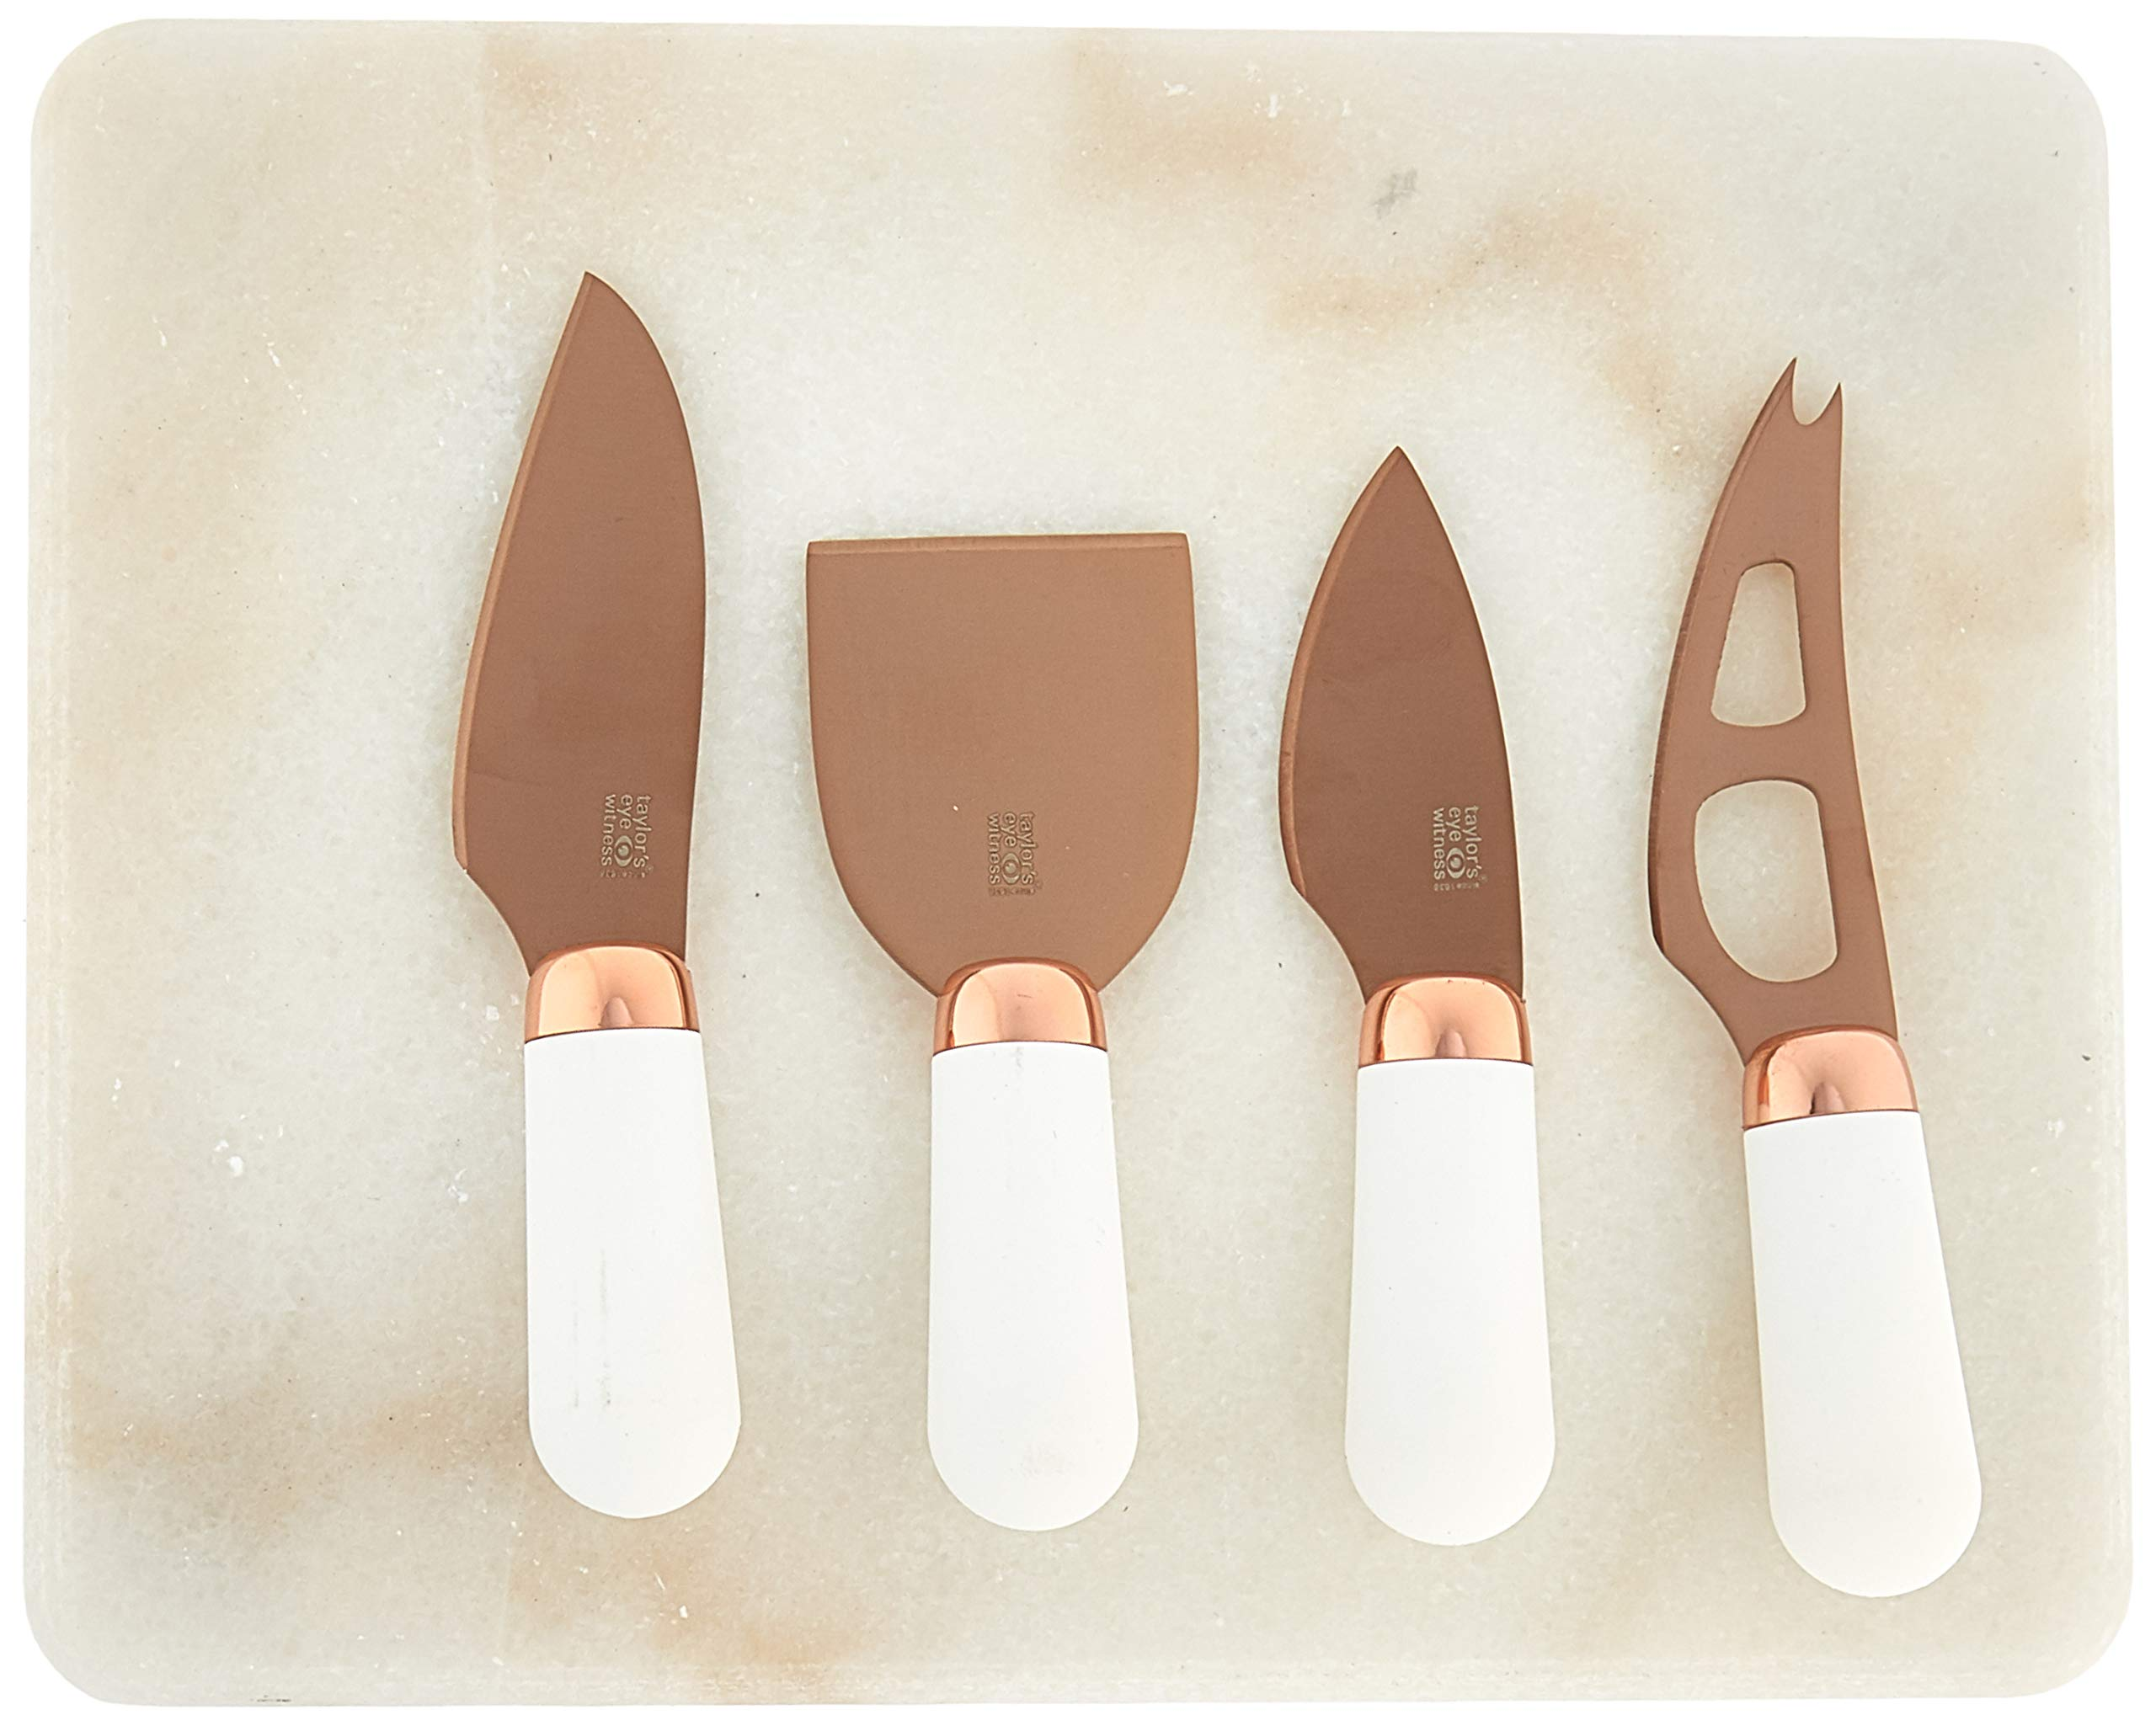 Taylor's Eye Witness TEW-LMS24CS11 Brooklyn Rose Gold 4 Pcs Knife Plus Marble Board Cheese Serving Set, one,